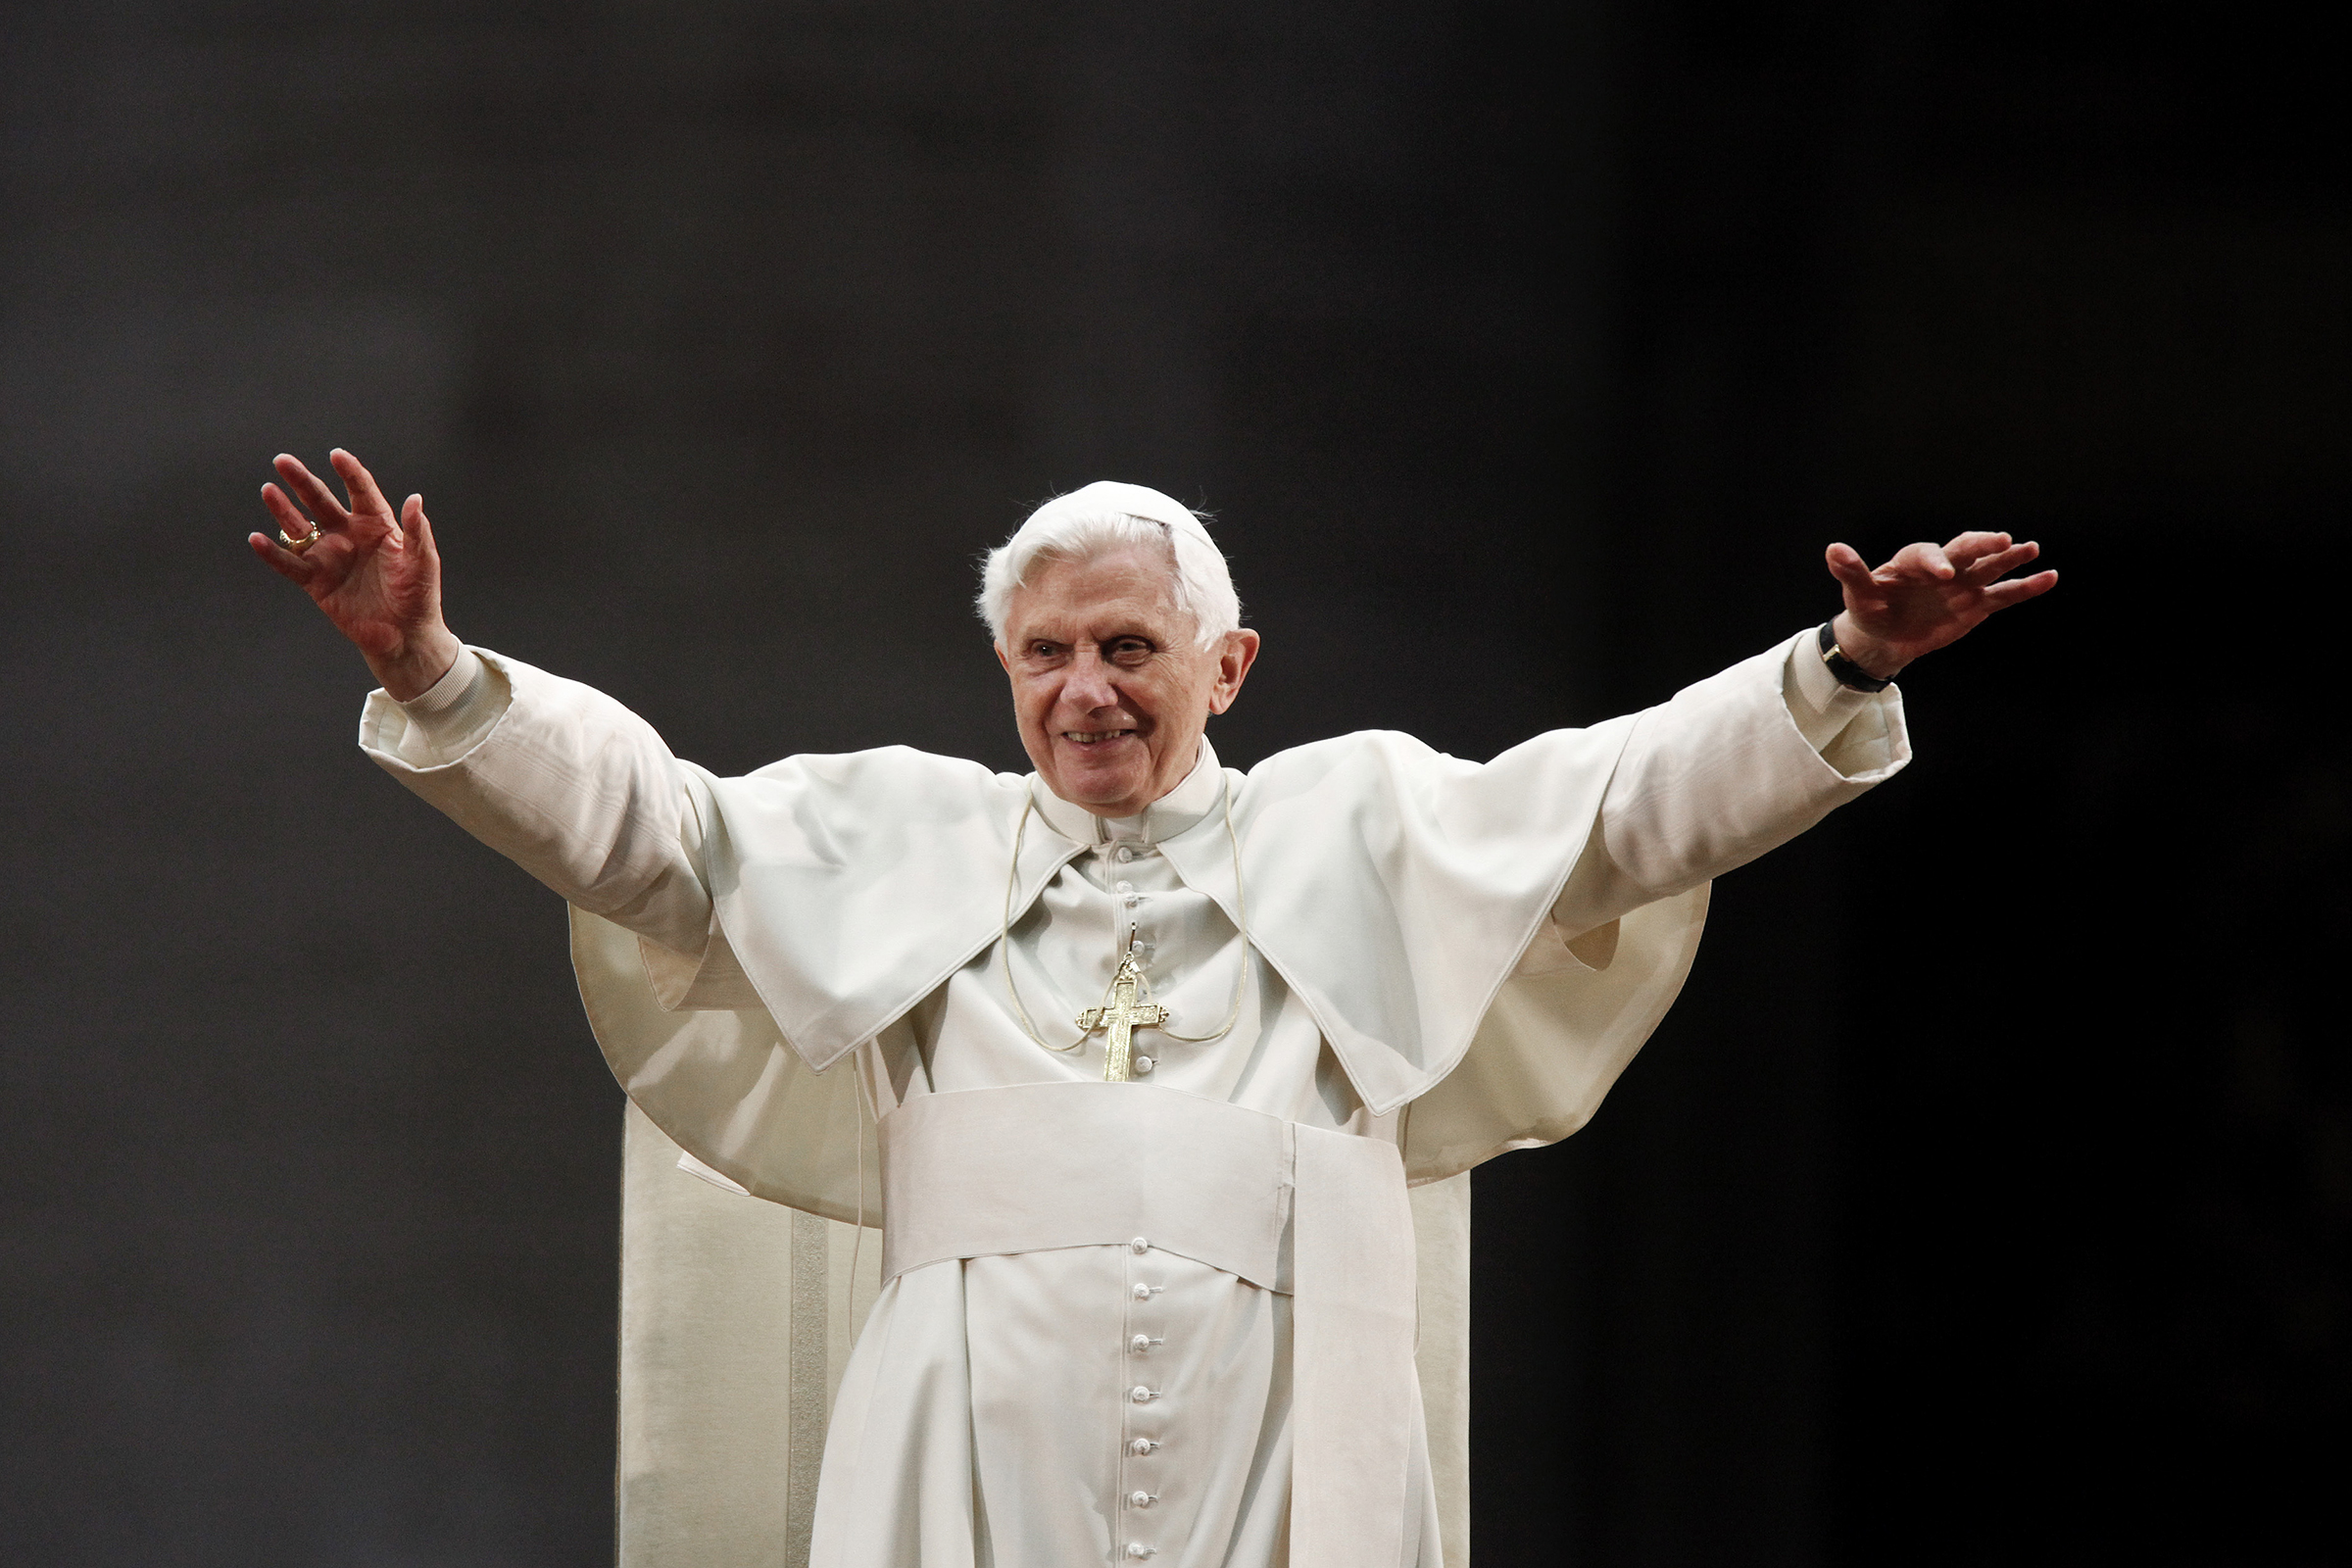 The Diagnosis and the Cure: Benedict XVI and the Dictatorship of Relativism